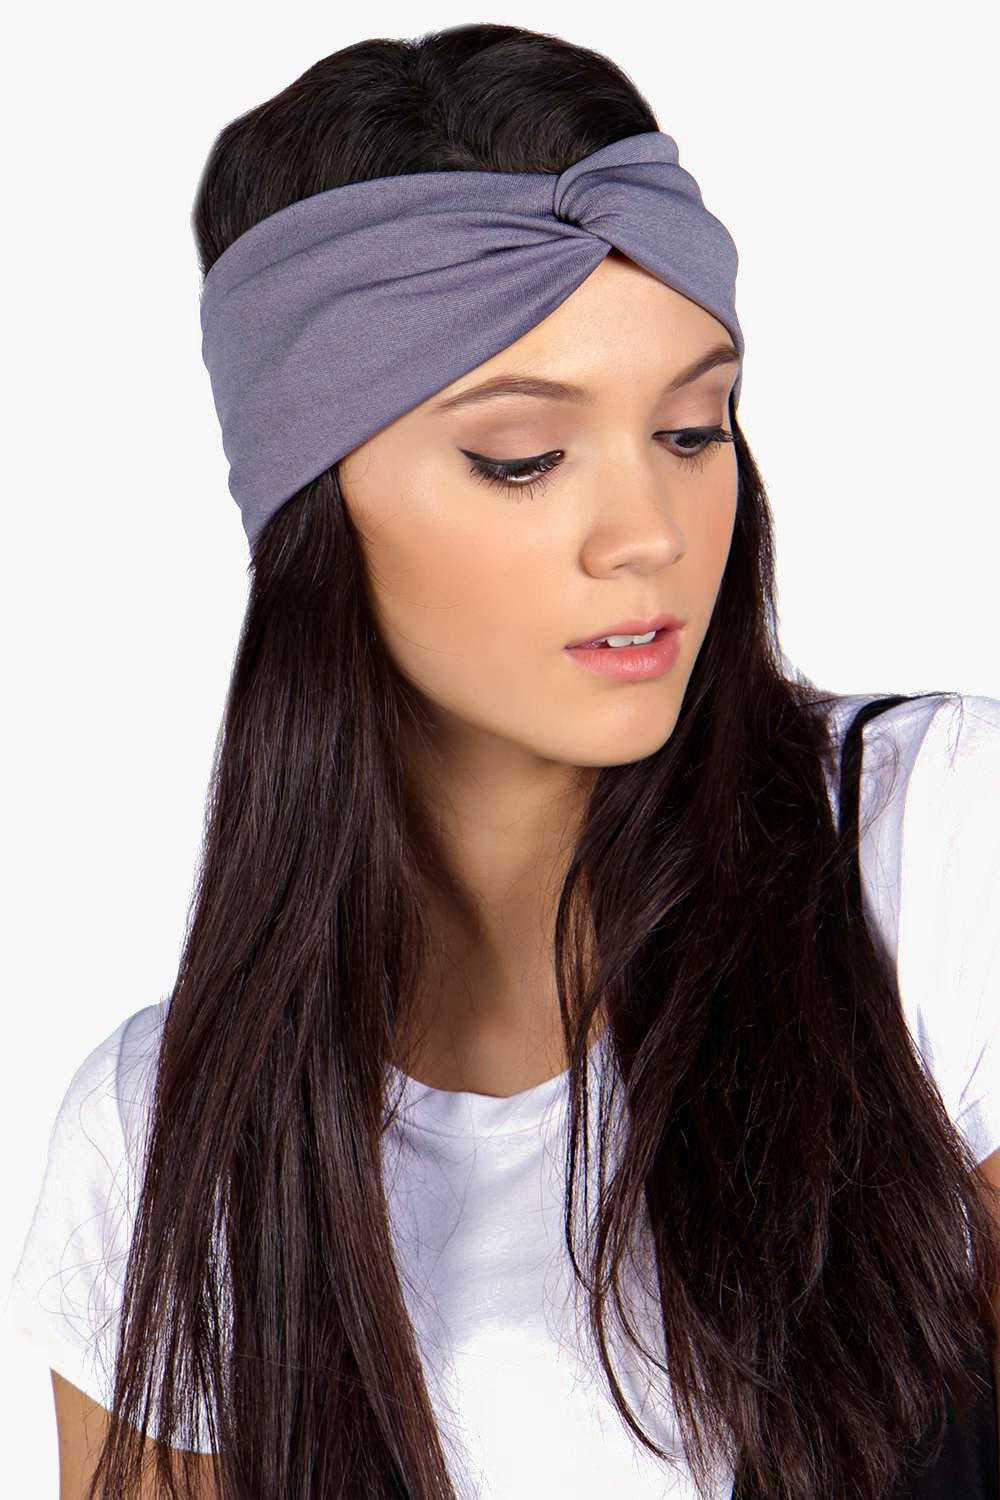 Jersey Twist Knot Turban Headband - grey - Say bye